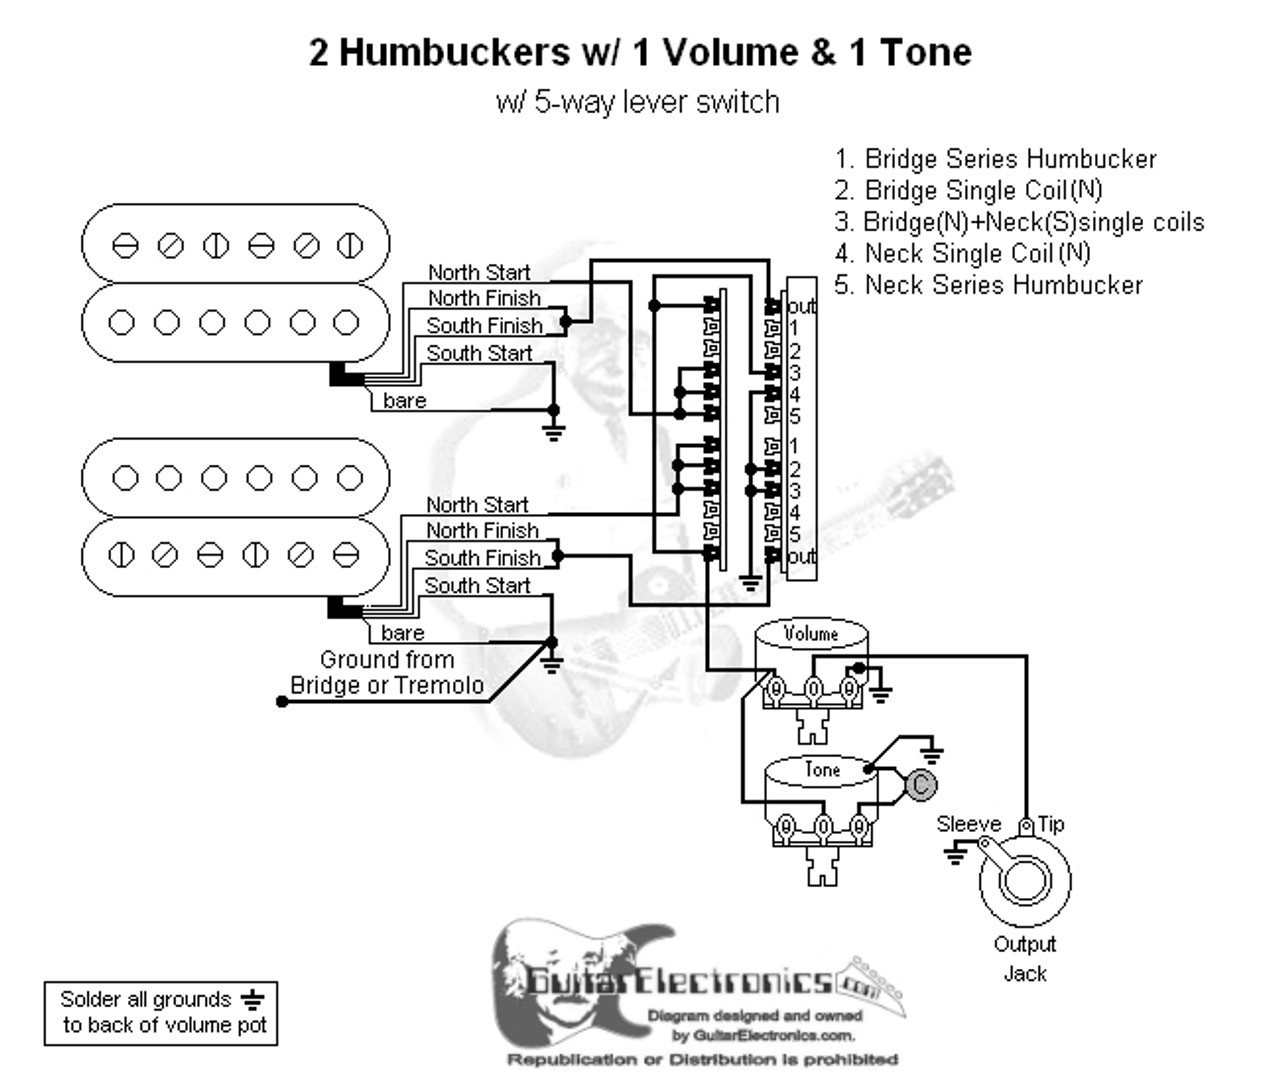 medium resolution of 2 humbuckers 5 way lever switch 1 volume 1 tone 01 wiring diagram 2 humbuckers 5way lever switch 1 volume 1 tone 03